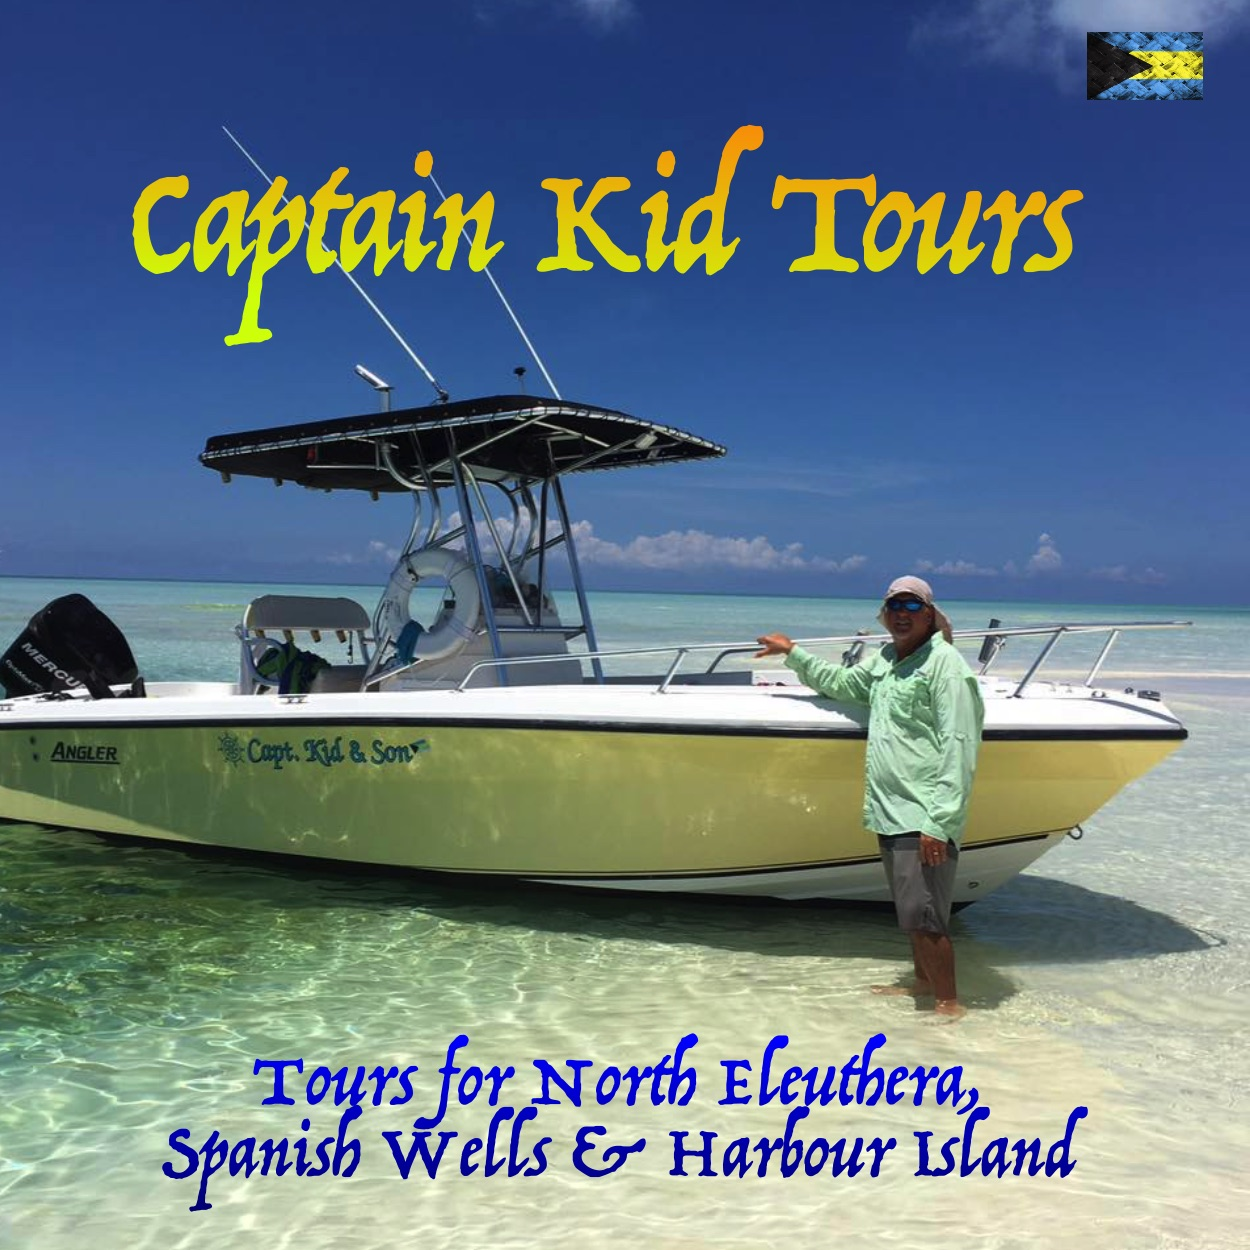 Captain Kid Tours, If you are Looking for Things to Do on Eleuthera Bahamas, you've come to the right place.